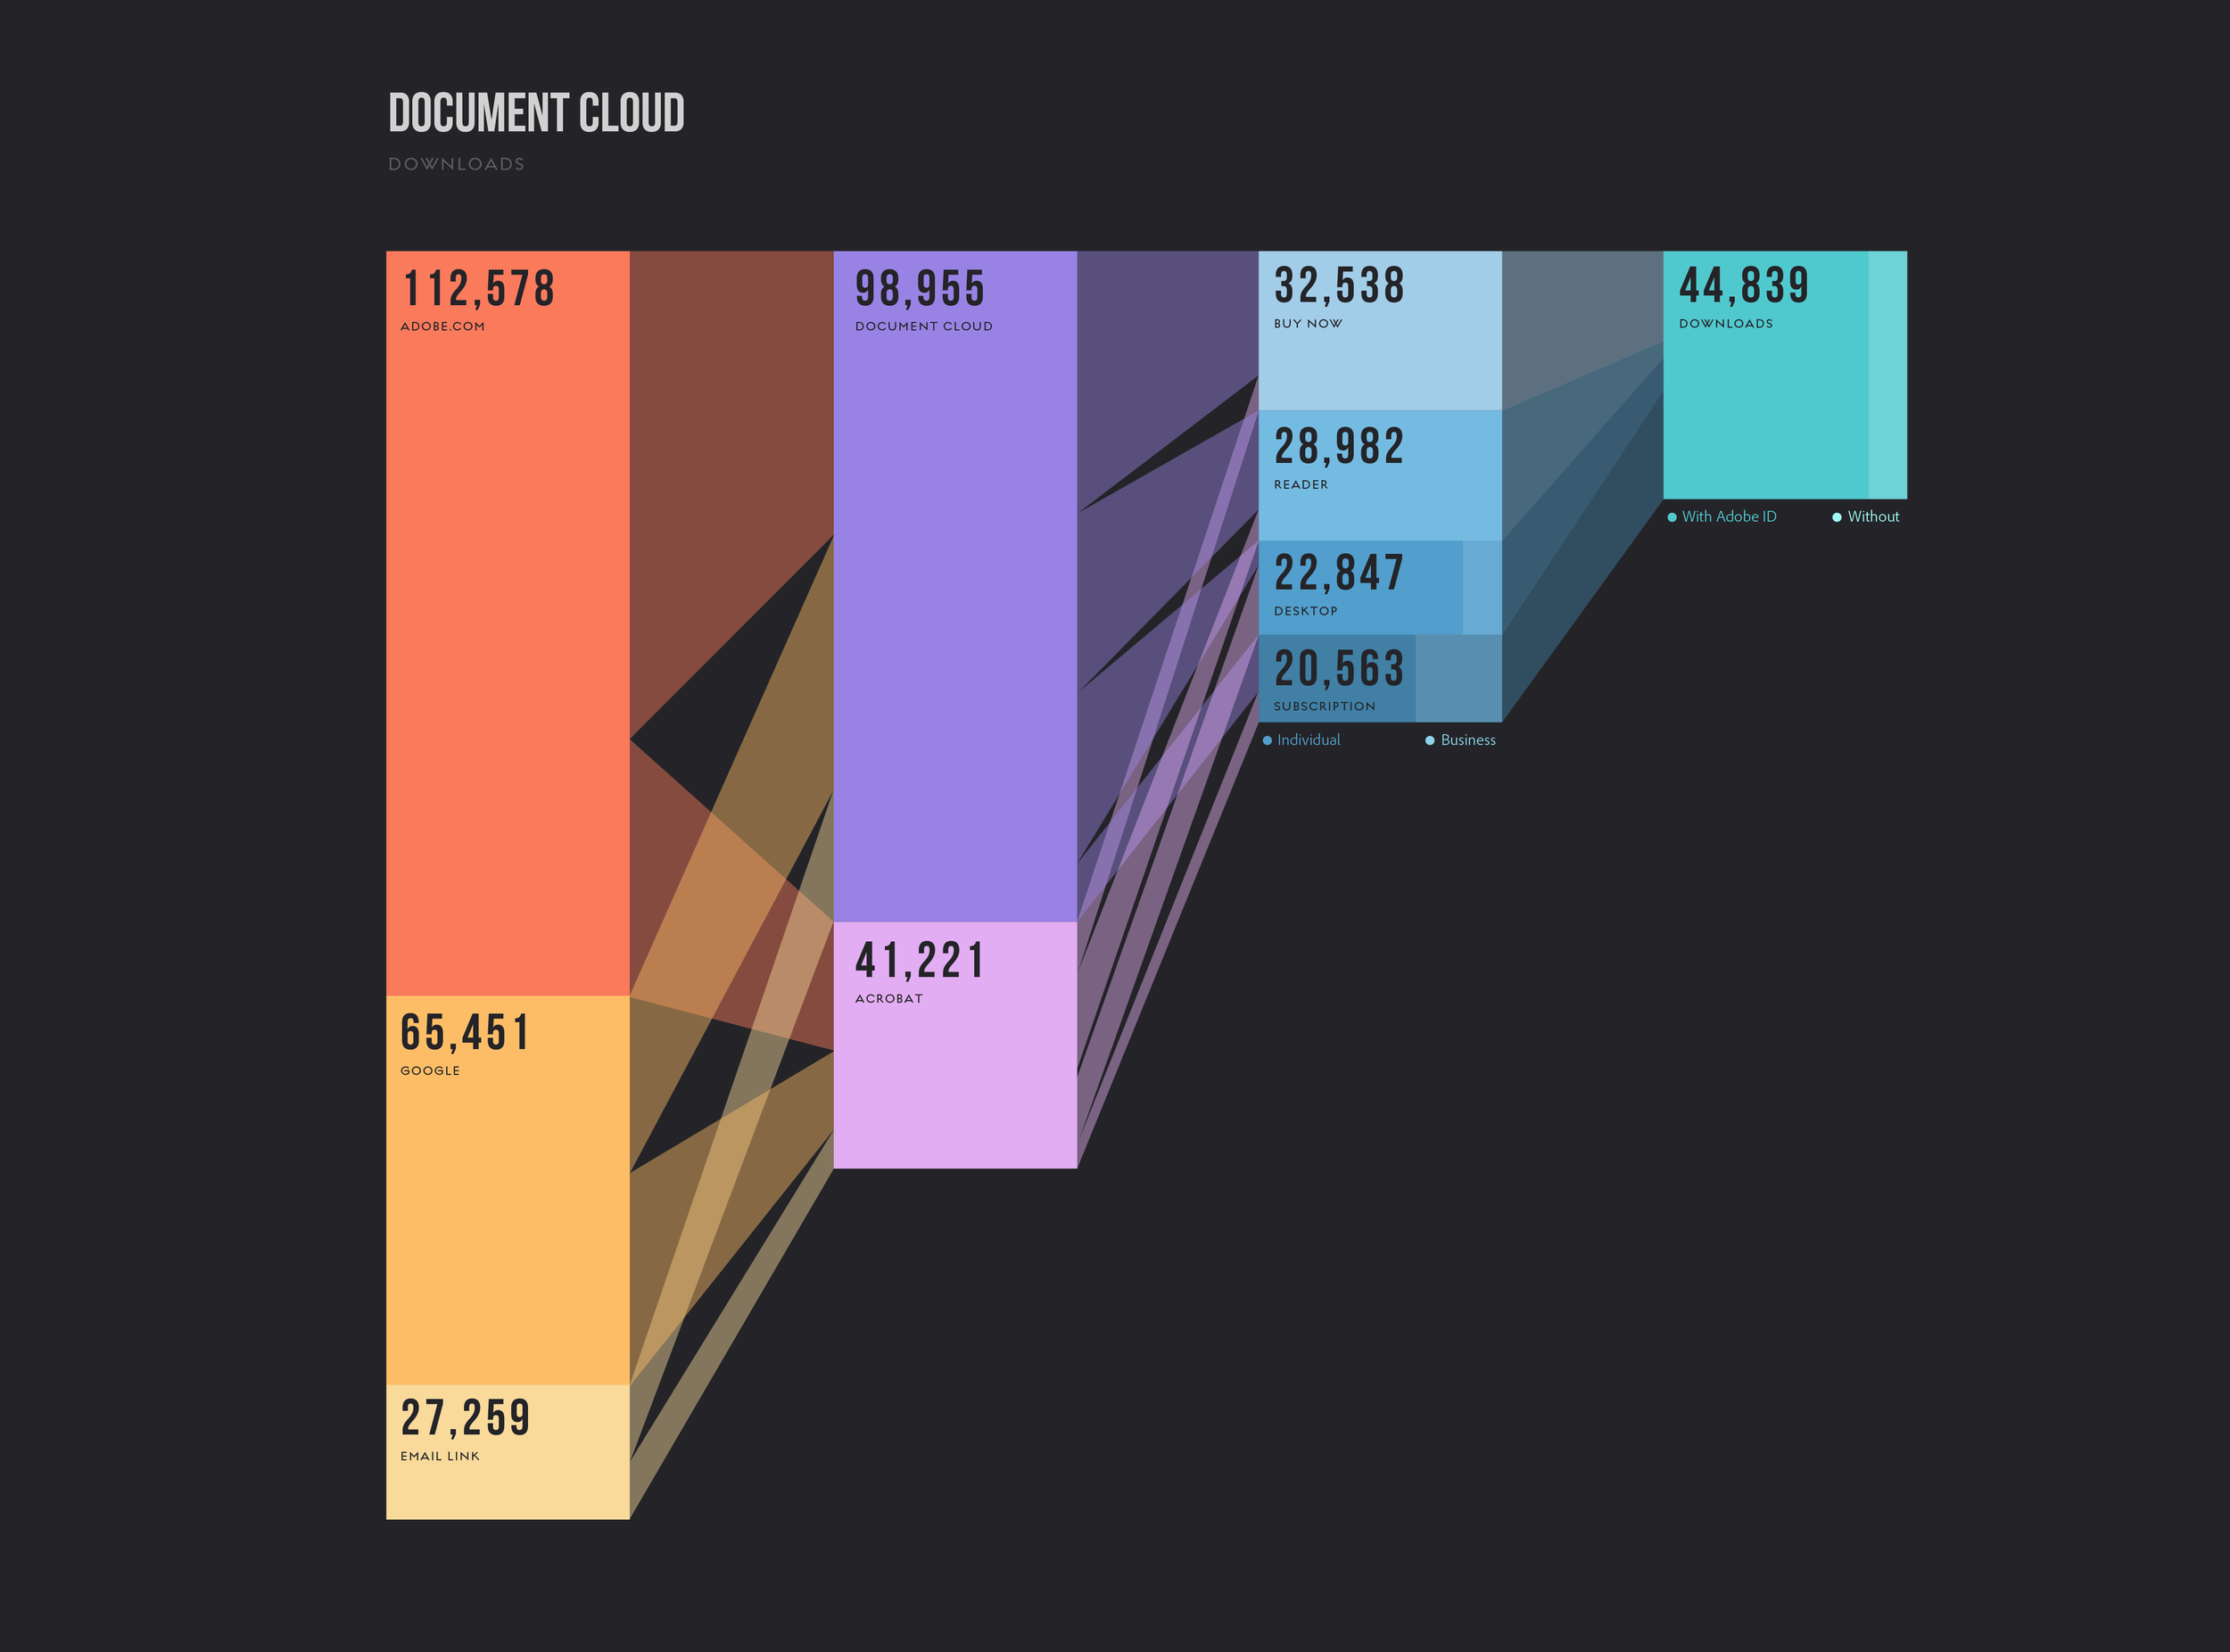 A sankey diagram showing how and where subscribers to Document Cloud come from.